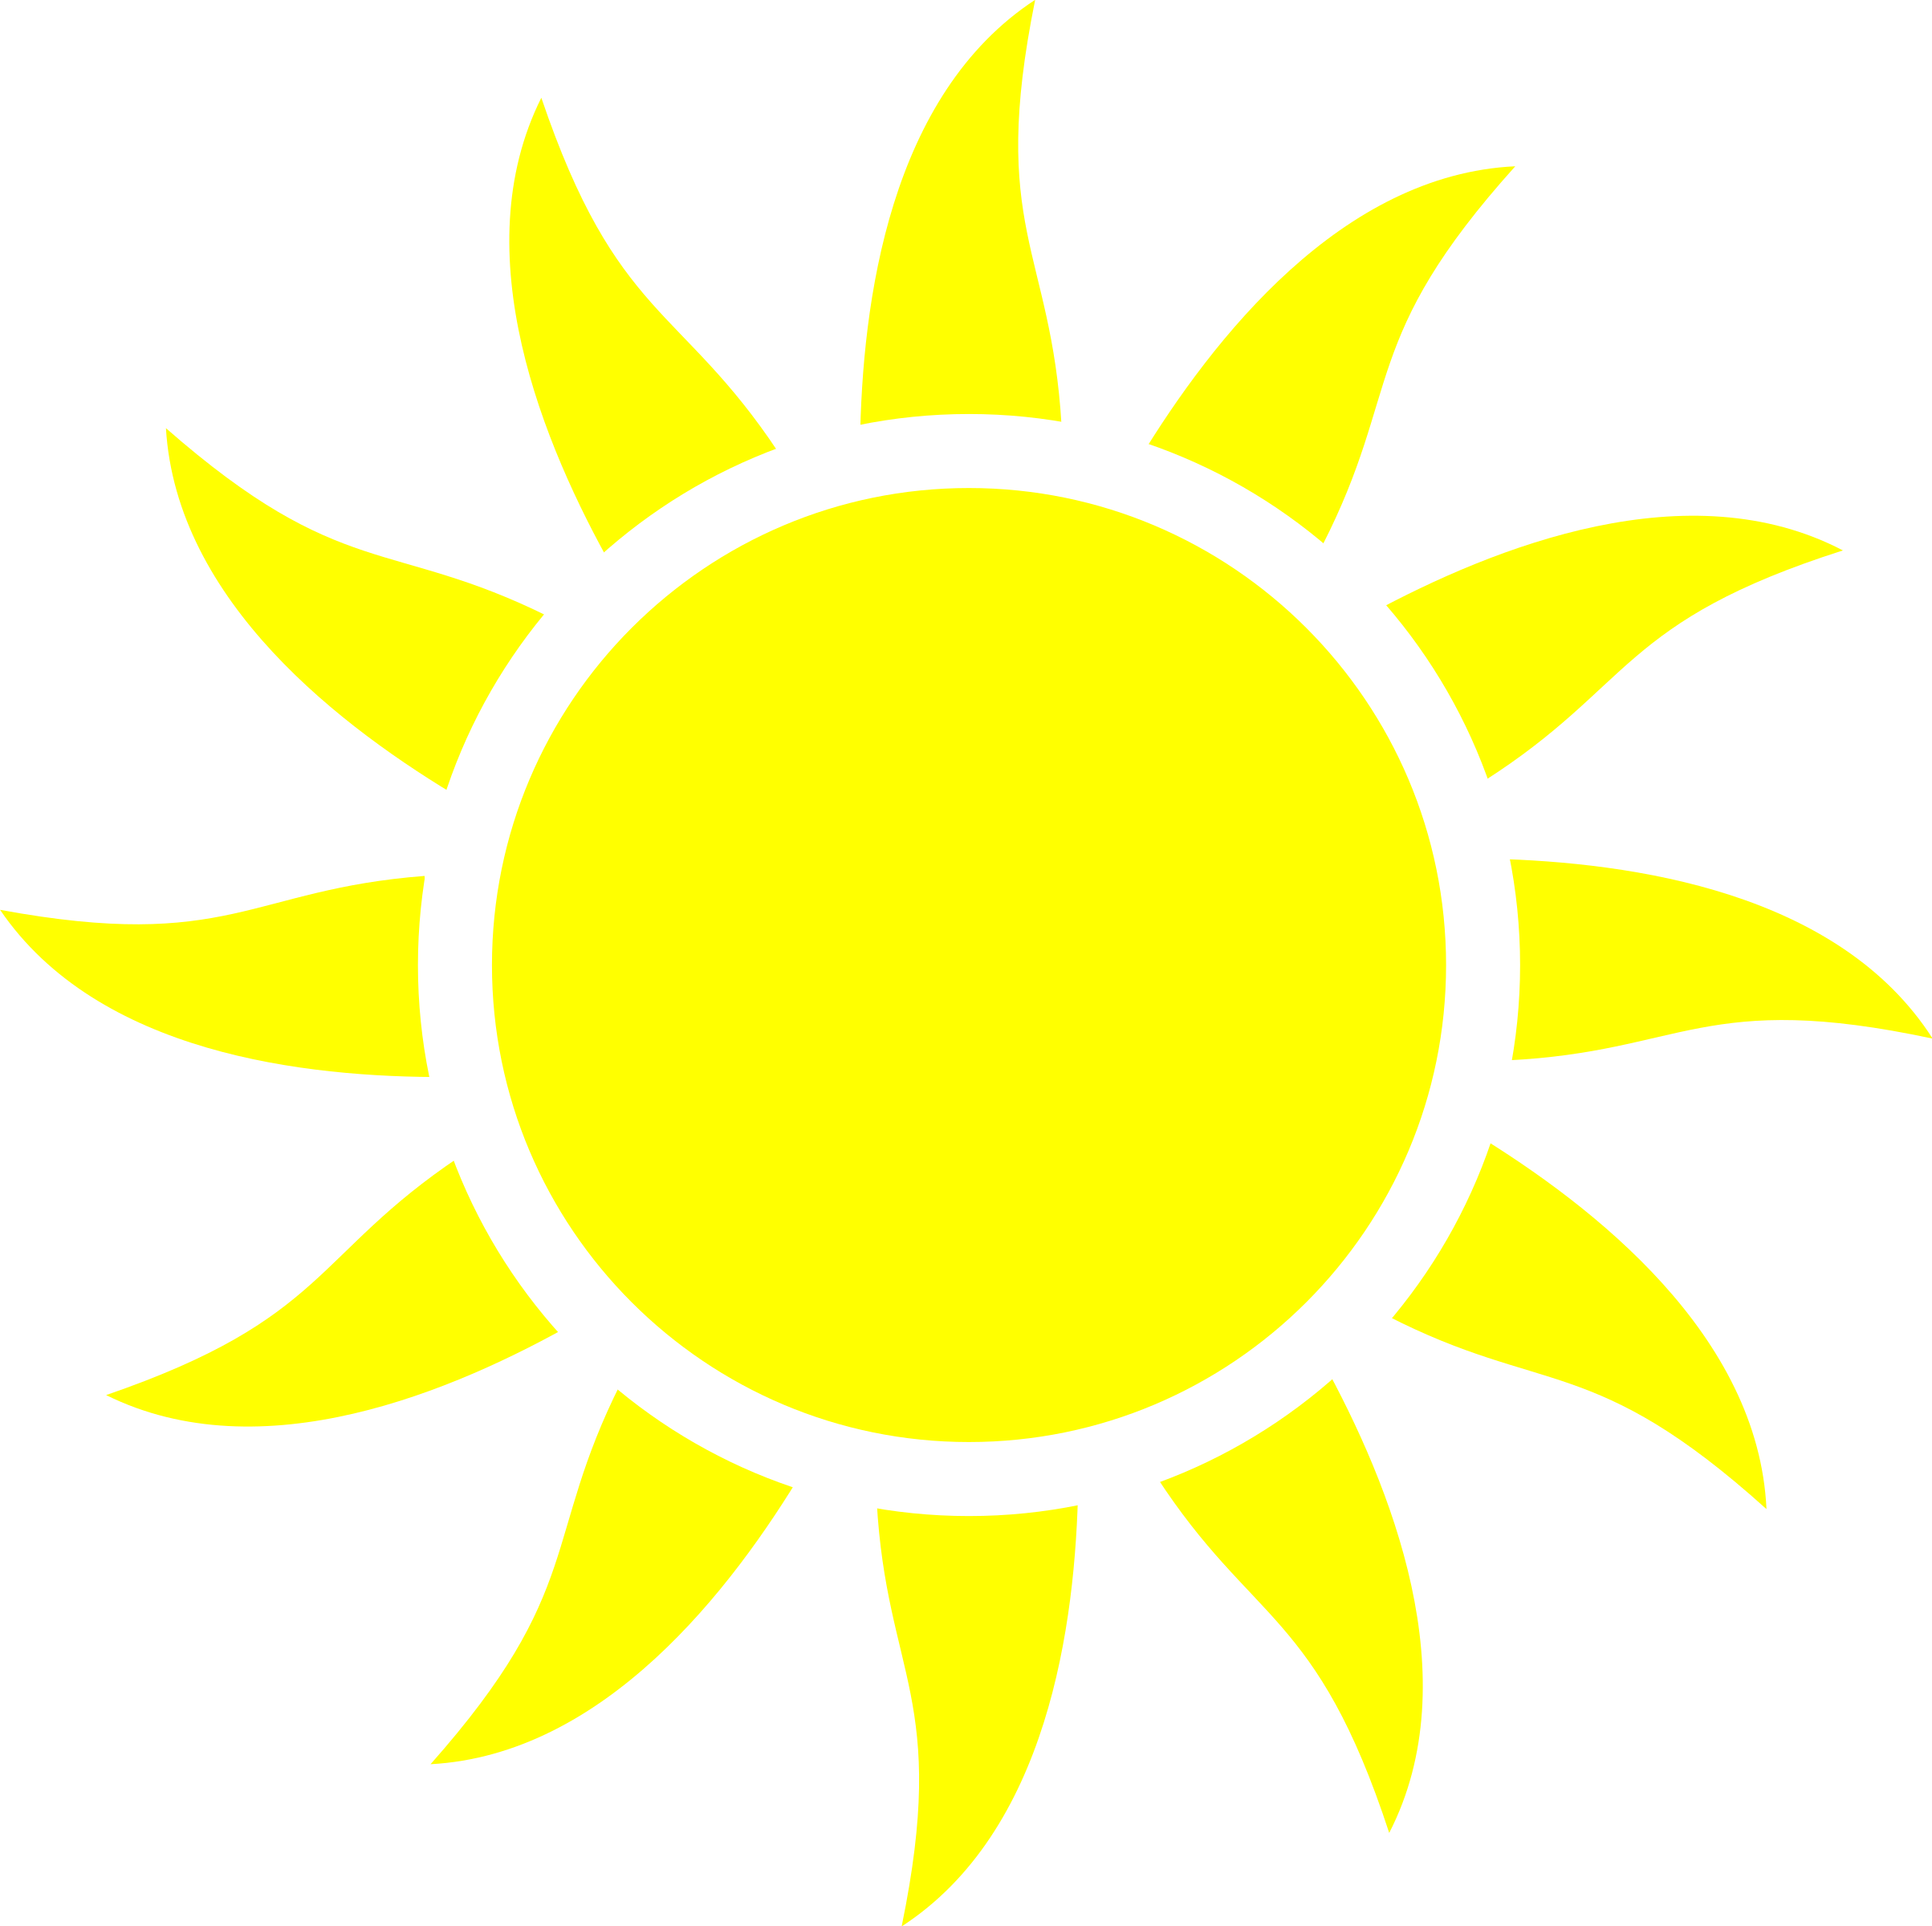 Icon big image png. Cute clipart sun